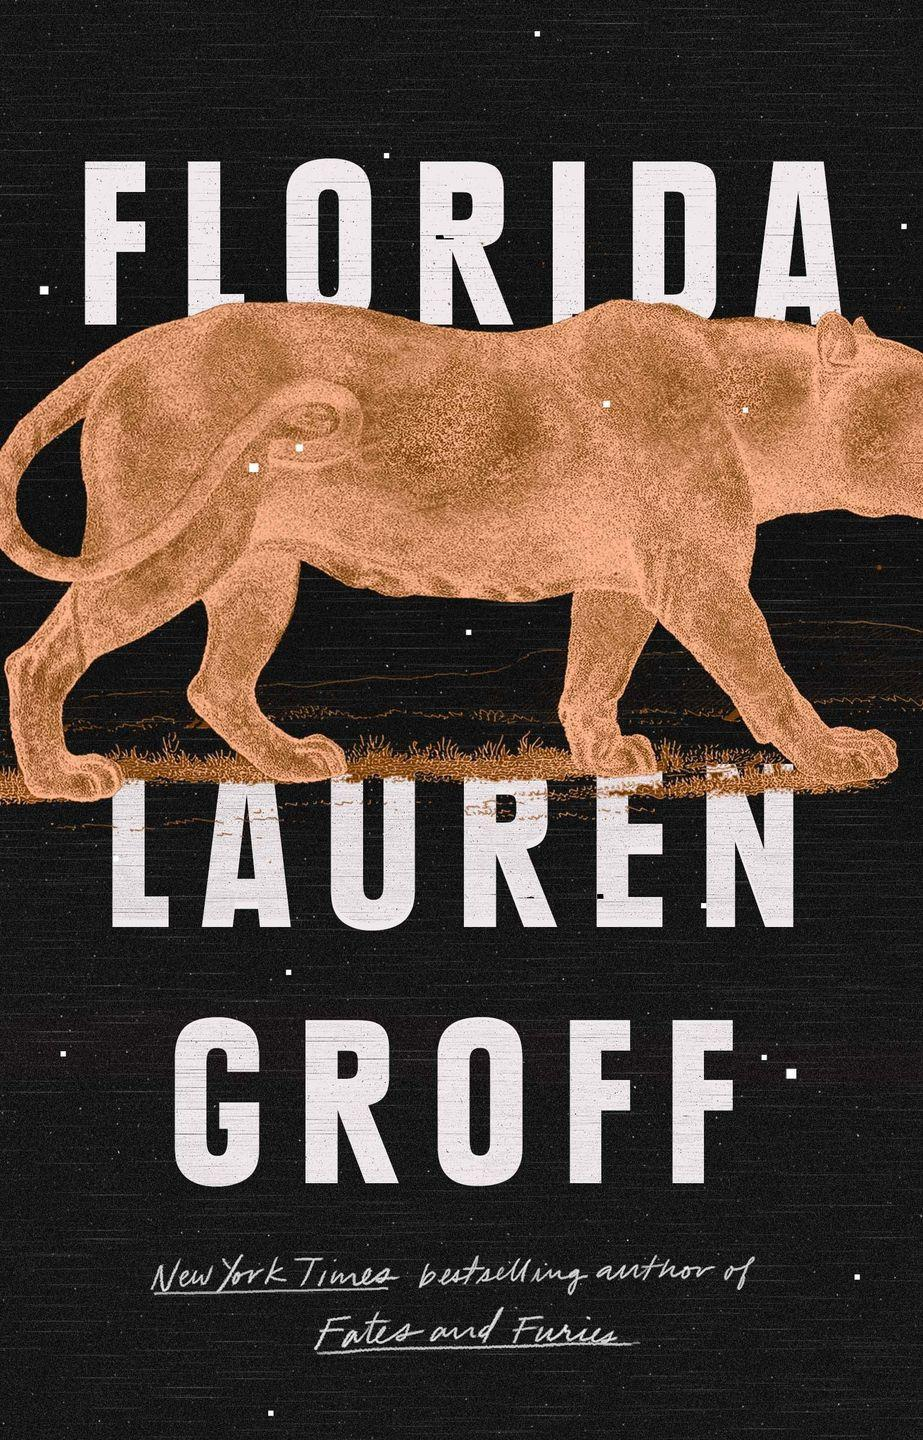 """<p>Snakes, crocodiles and lizards stalk the pages of this 2018 collection from one of America's most celebrated novelists, in which the muggy, murky state of Florida is always a principle character. Groff's mastery of language, plot and dialogue are on full display in a set of stories that linger long after you've closed the last page.</p><p><a class=""""link rapid-noclick-resp"""" href=""""https://www.amazon.co.uk/Florida-Lauren-Groff/dp/1785151886/ref=sr_1_1?s=books&ie=UTF8&qid=1533559987&sr=1-1&keywords=florida+lauren+groff&tag=hearstuk-yahoo-21&ascsubtag=%5Bartid%7C1923.g.15840493%5Bsrc%7Cyahoo-uk"""" rel=""""nofollow noopener"""" target=""""_blank"""" data-ylk=""""slk:SHOP"""">SHOP</a><br></p>"""